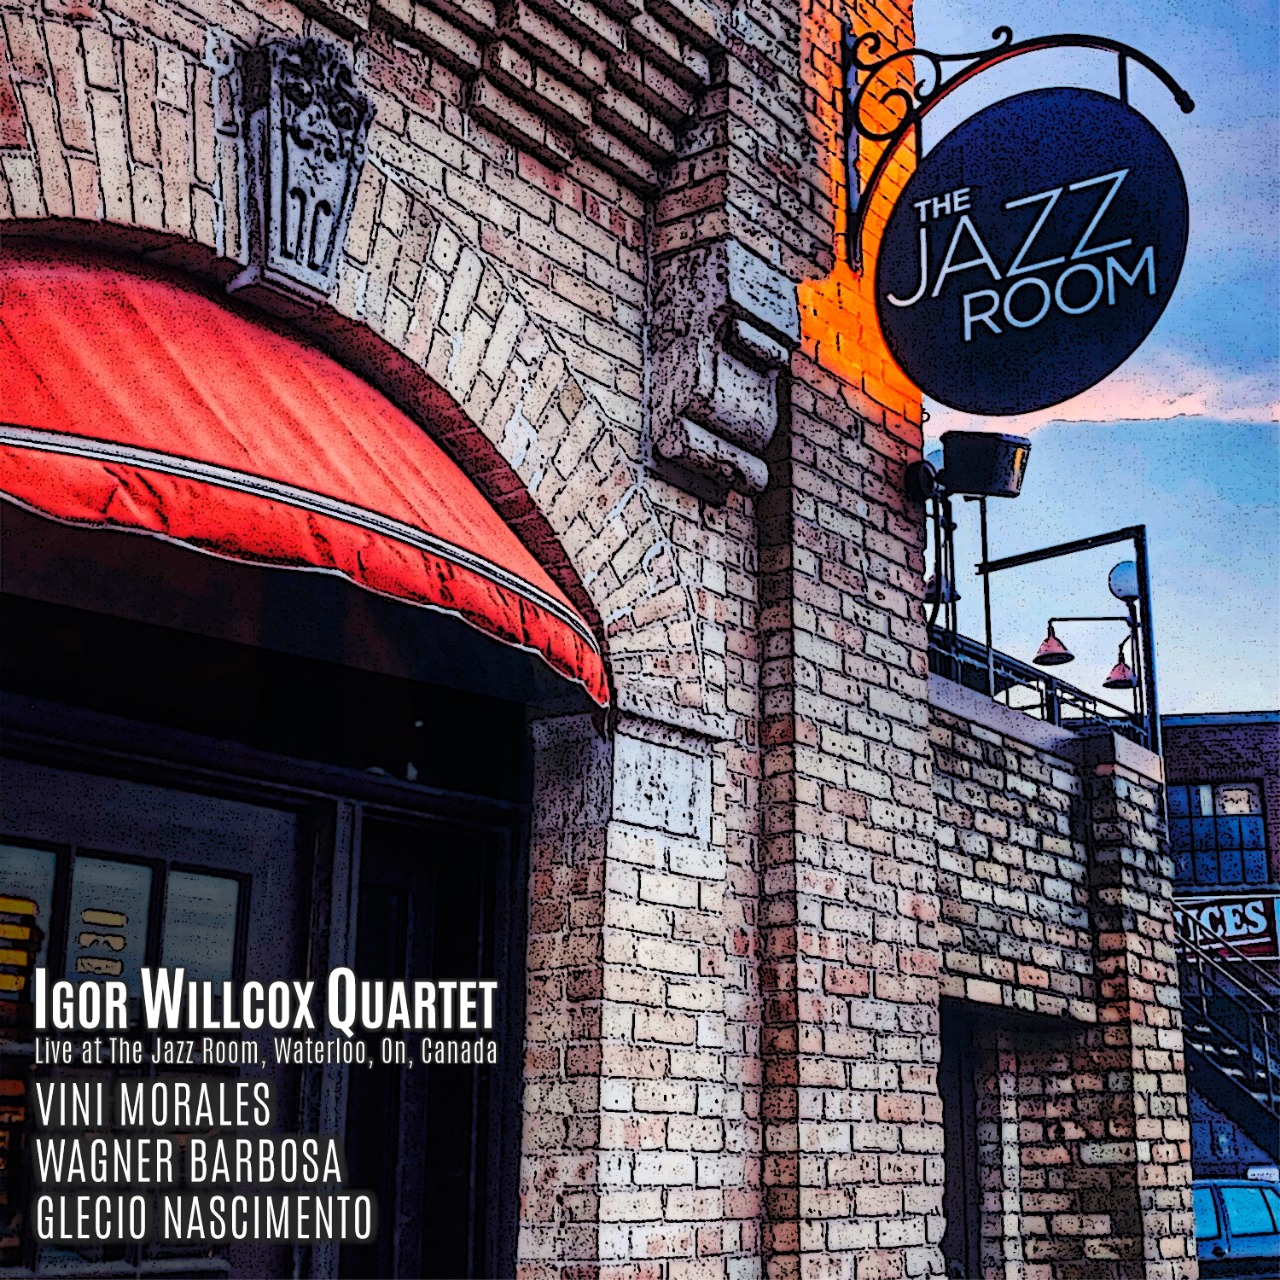 Igor Willcox Quartet - Live at The Jazz Room